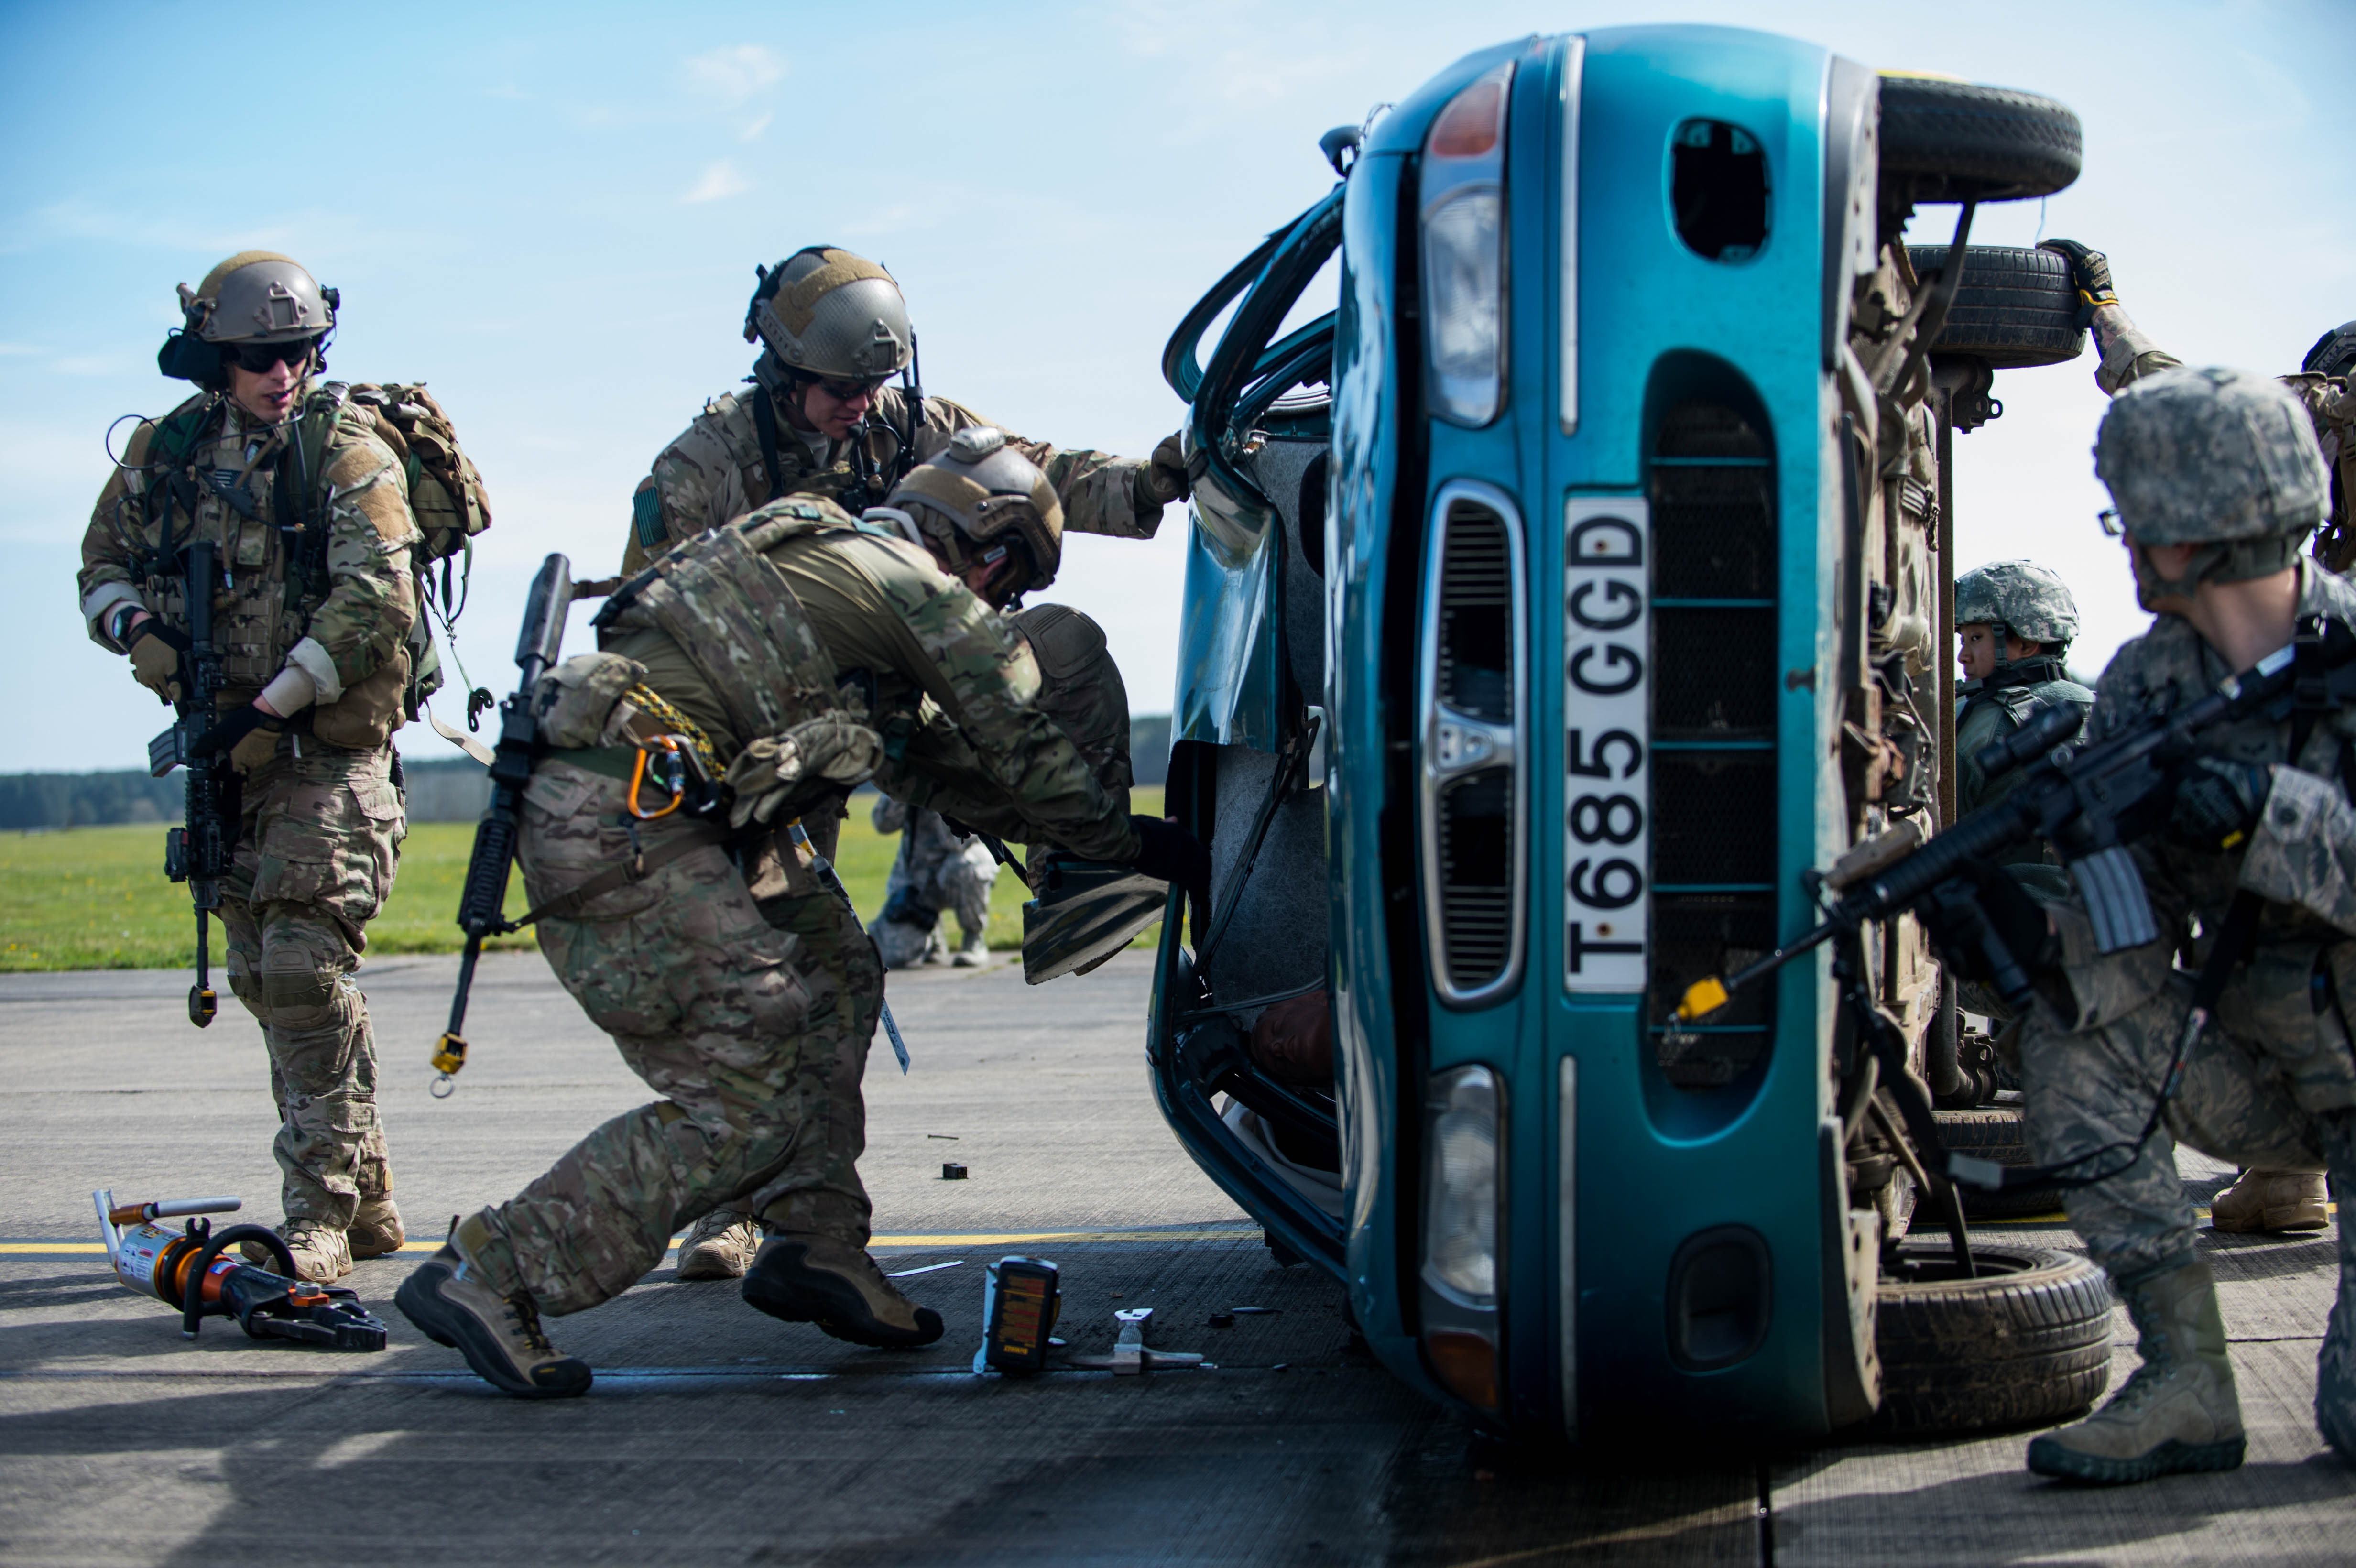 air force helicopters with File Pararescuemen Assigned To The 57th Rescue Squadron Use The Jaws Of Life To Tear Apart A Vehicle 27s Roof To Remove A Mock Victim on H225M 50 likewise Open photo in addition Open photo furthermore Aircraft moreover Douglas Skyraider Ad 4na.